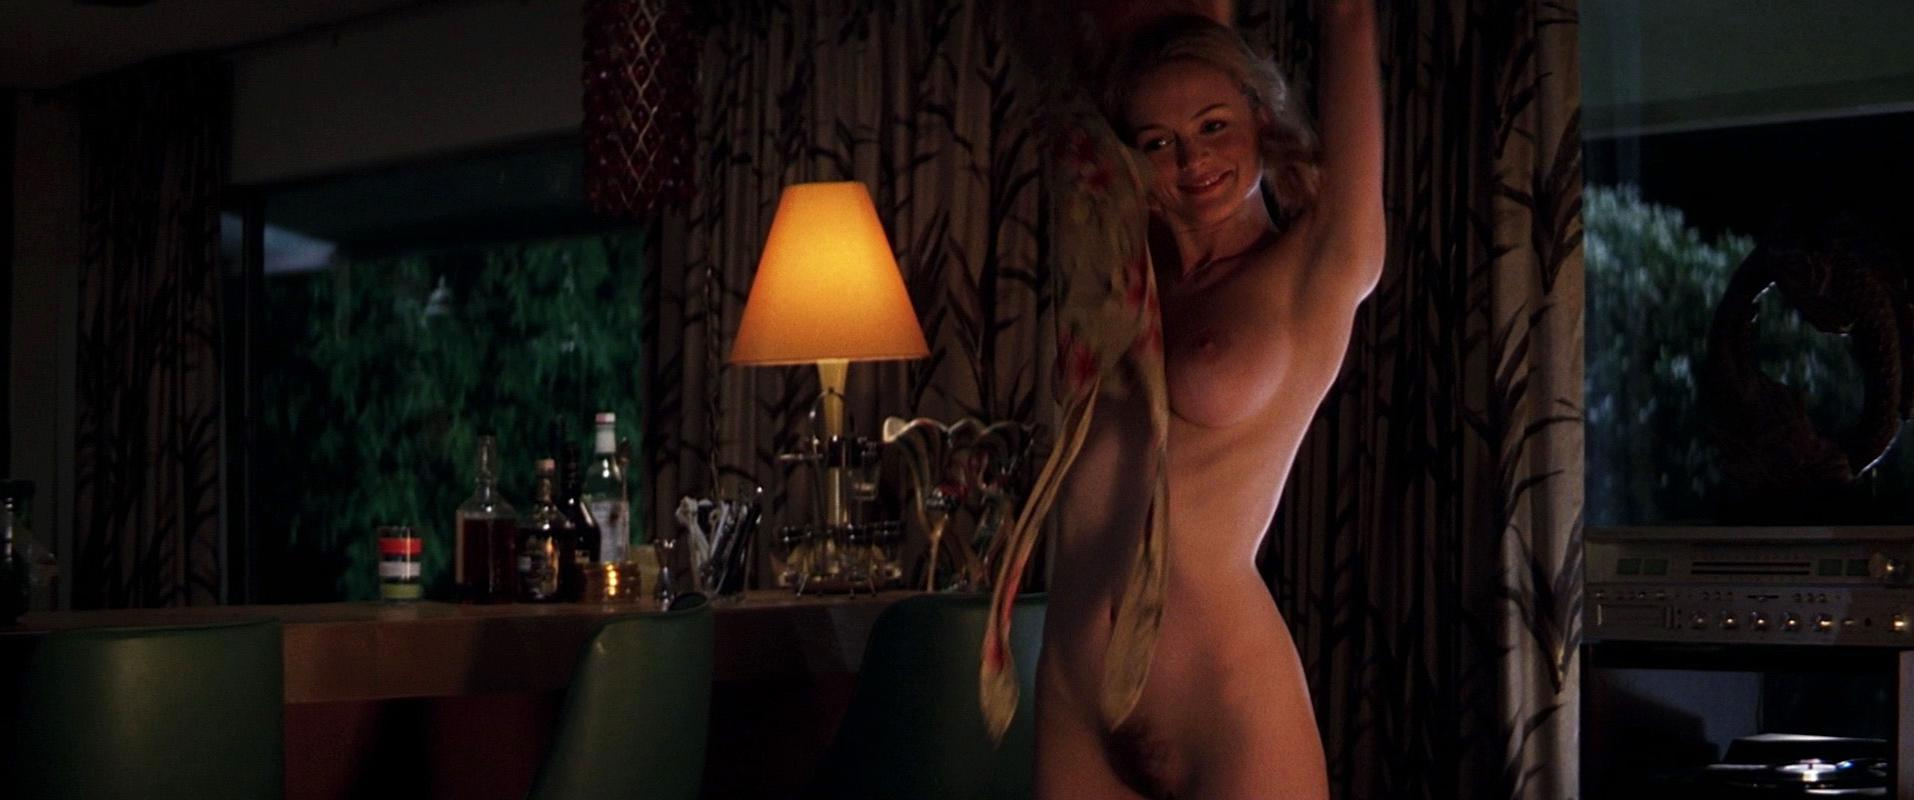 Heather graham naked pics in the movies